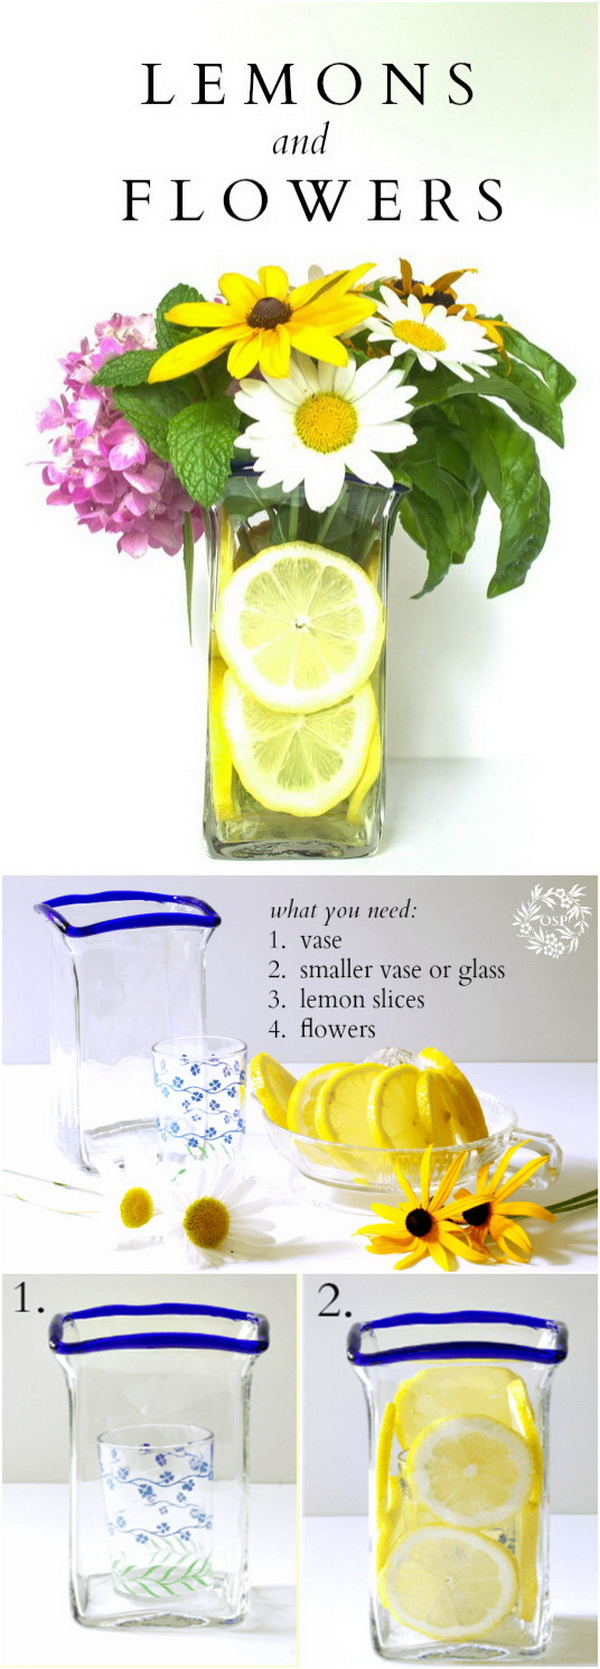 Lemon and Flower Arrangement. Lemon slices can be used as an embellishment within a vase to enhance the simple flower arrangement. This project works beautifully as décor at a summer party or wedding reception.